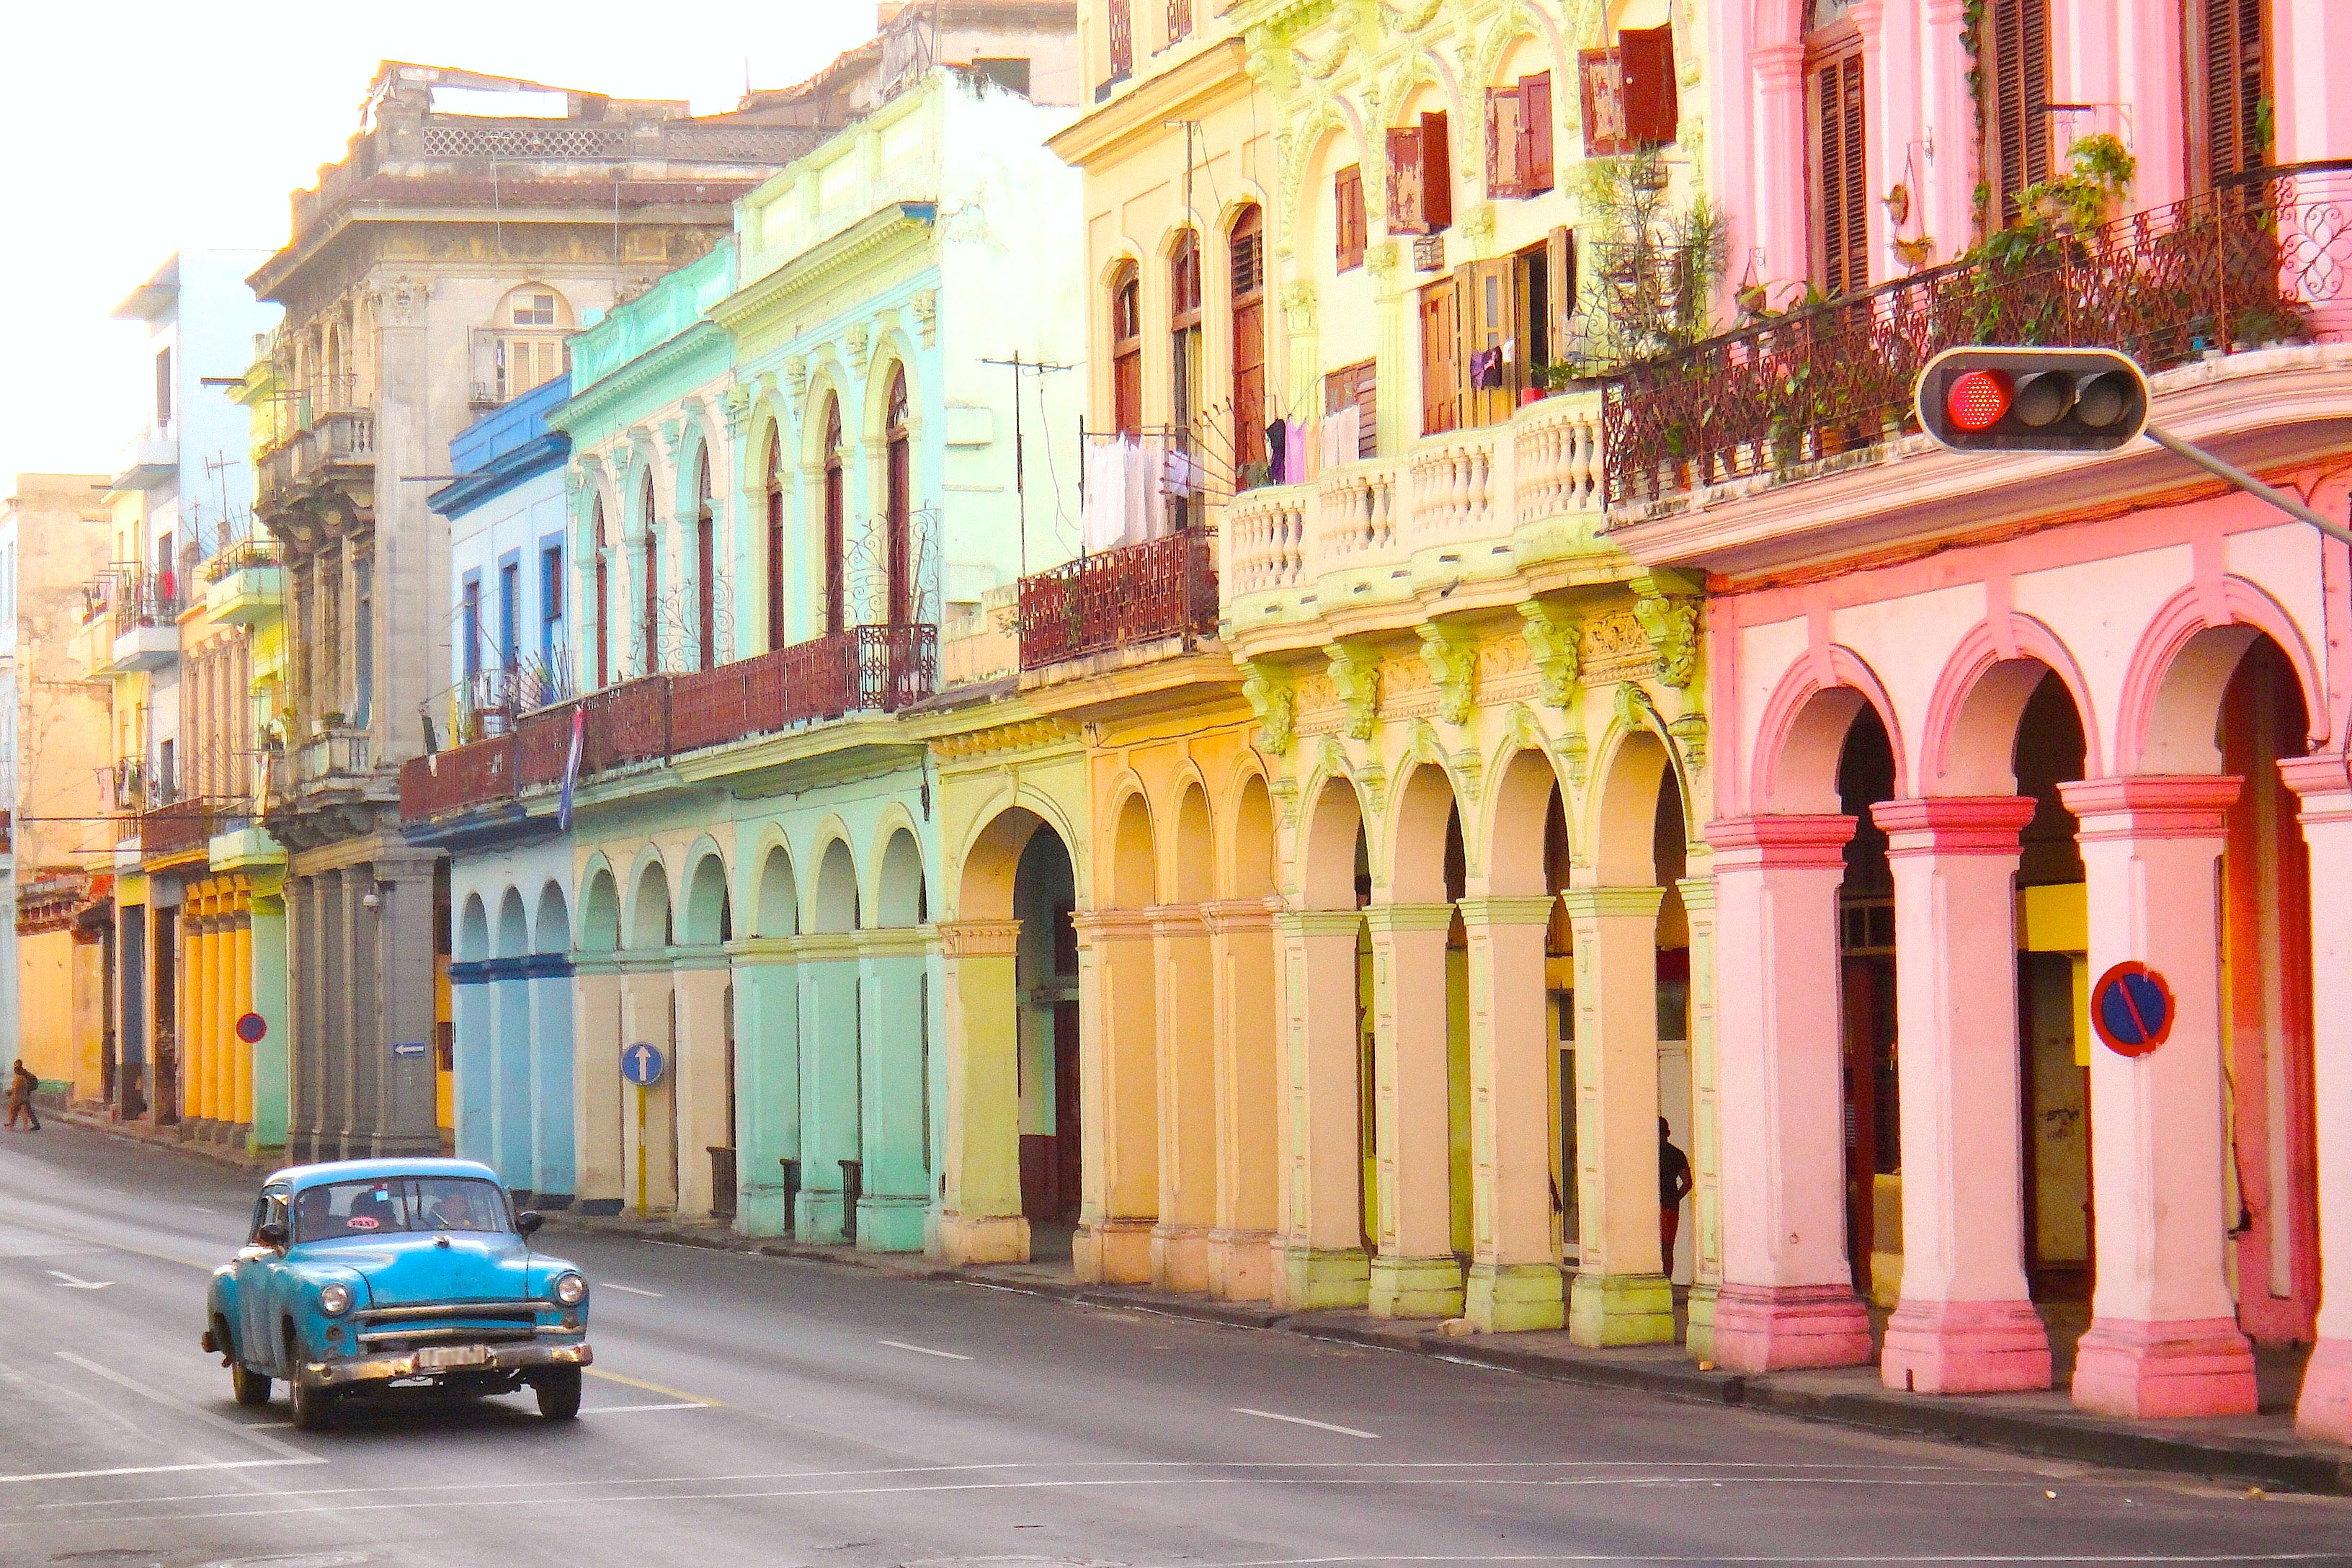 Discover stunning island charm with Cuba tours